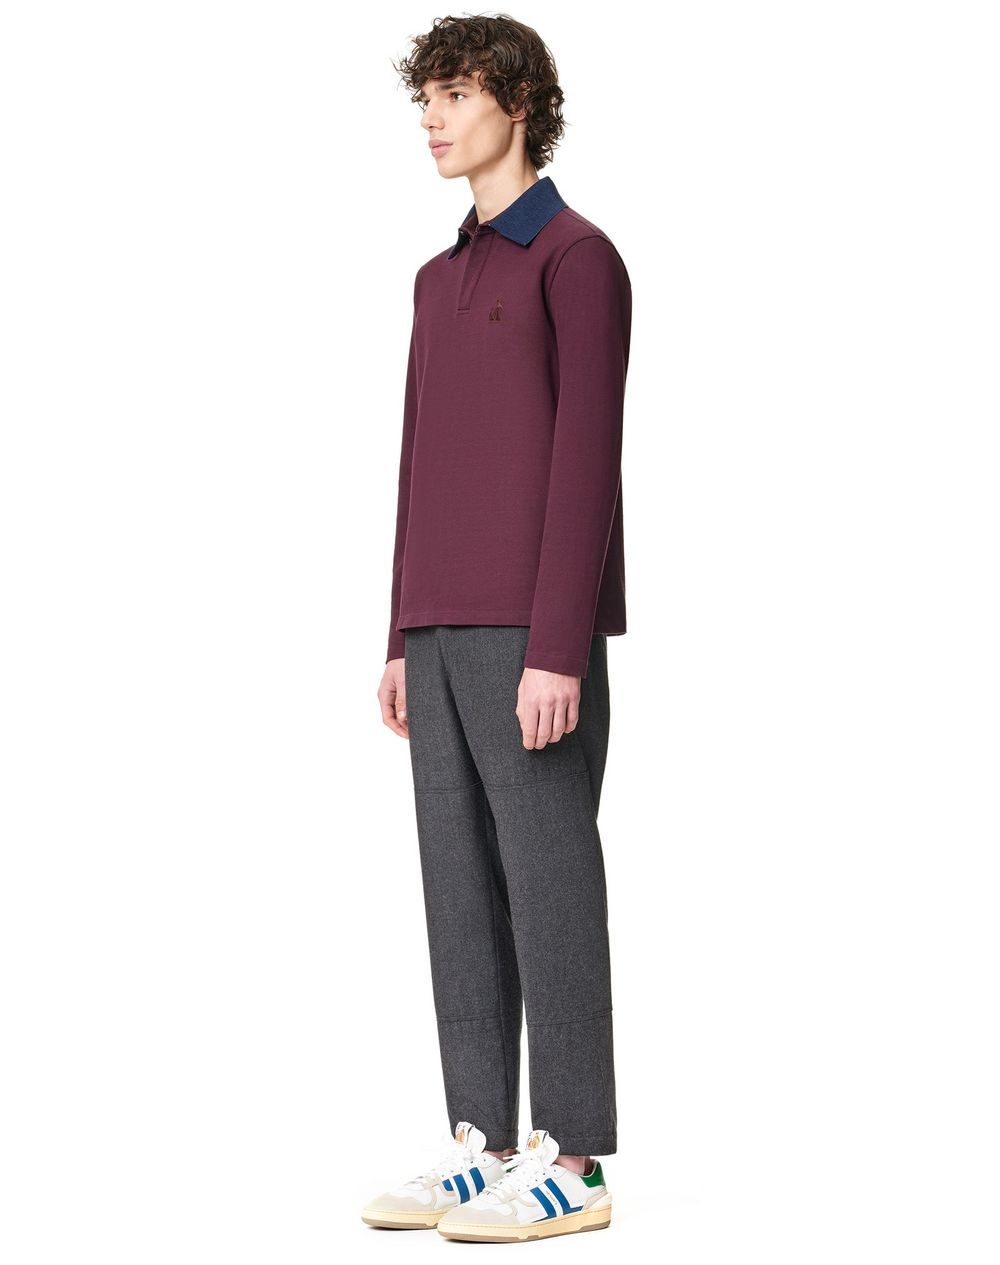 LONG SLEEVES POLO - Lanvin